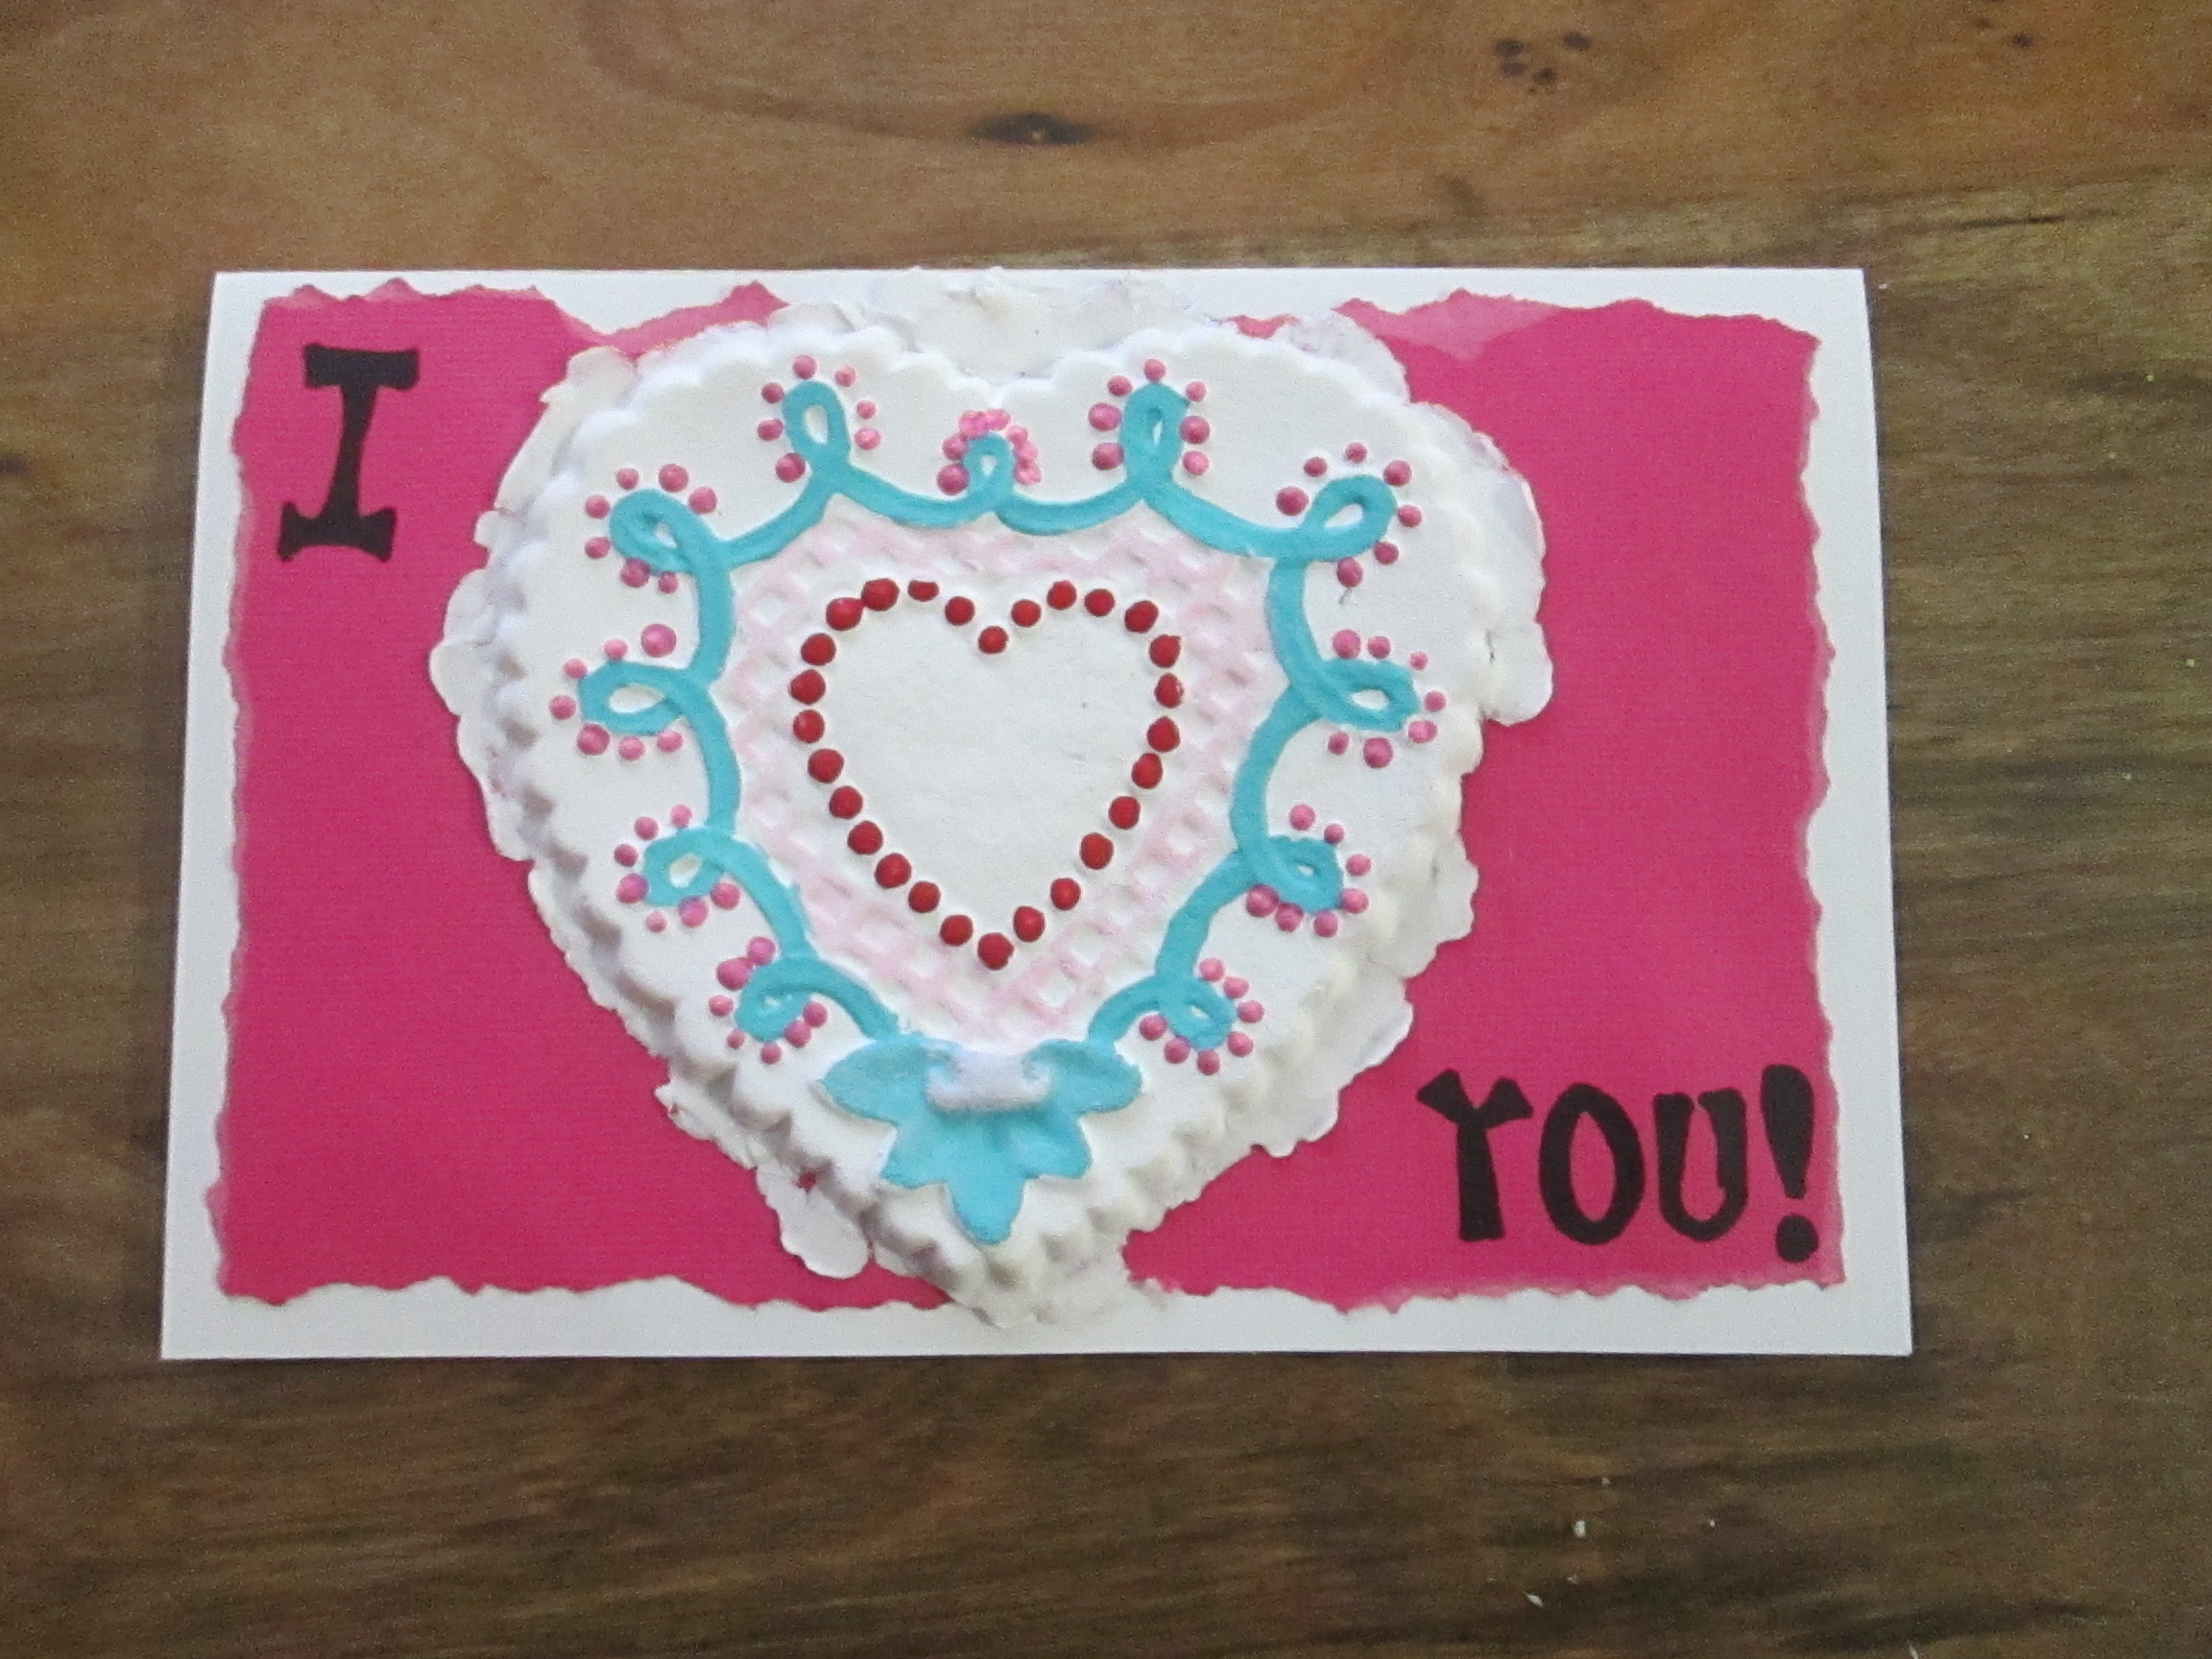 Brown Bag Mold Paper Casting for Valentine's Day